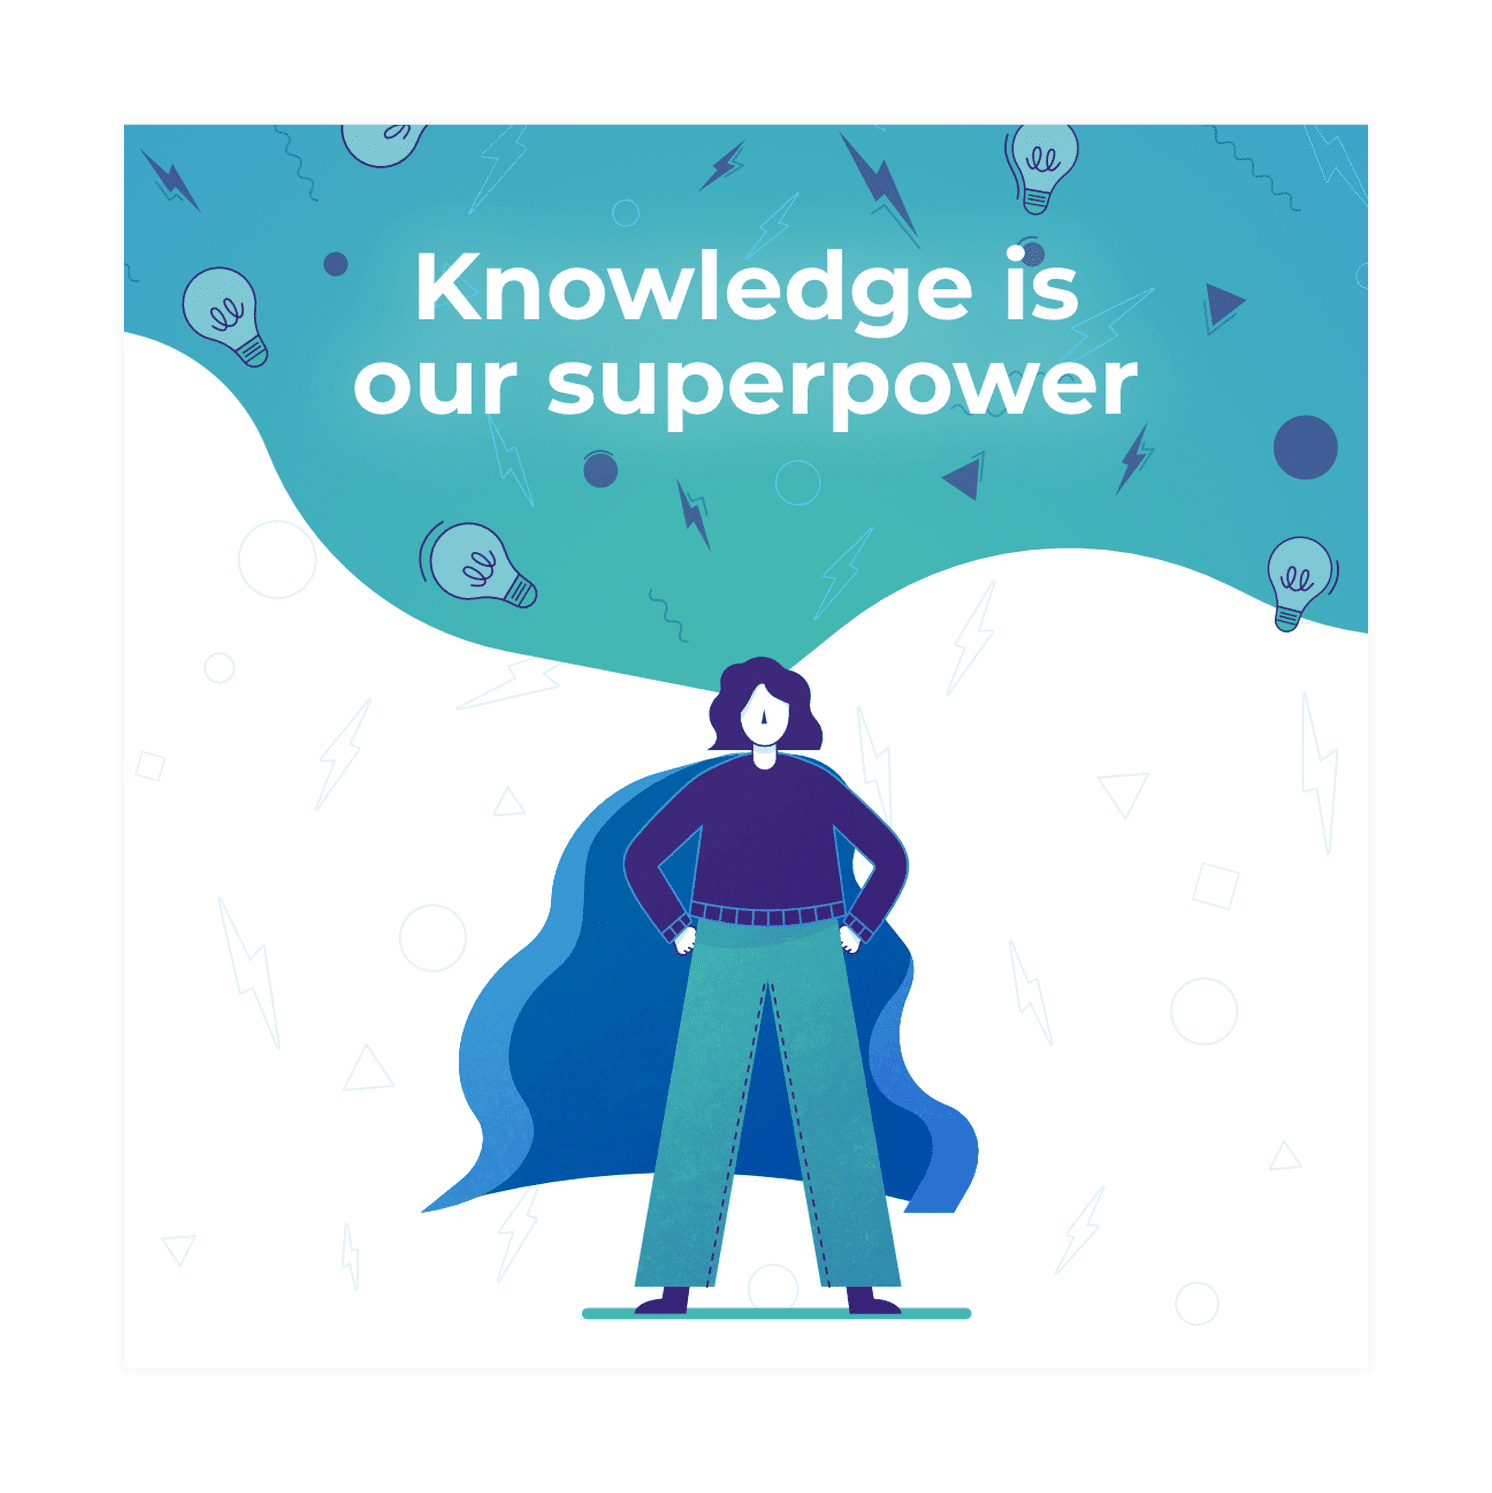 Knowledge is our superpower.